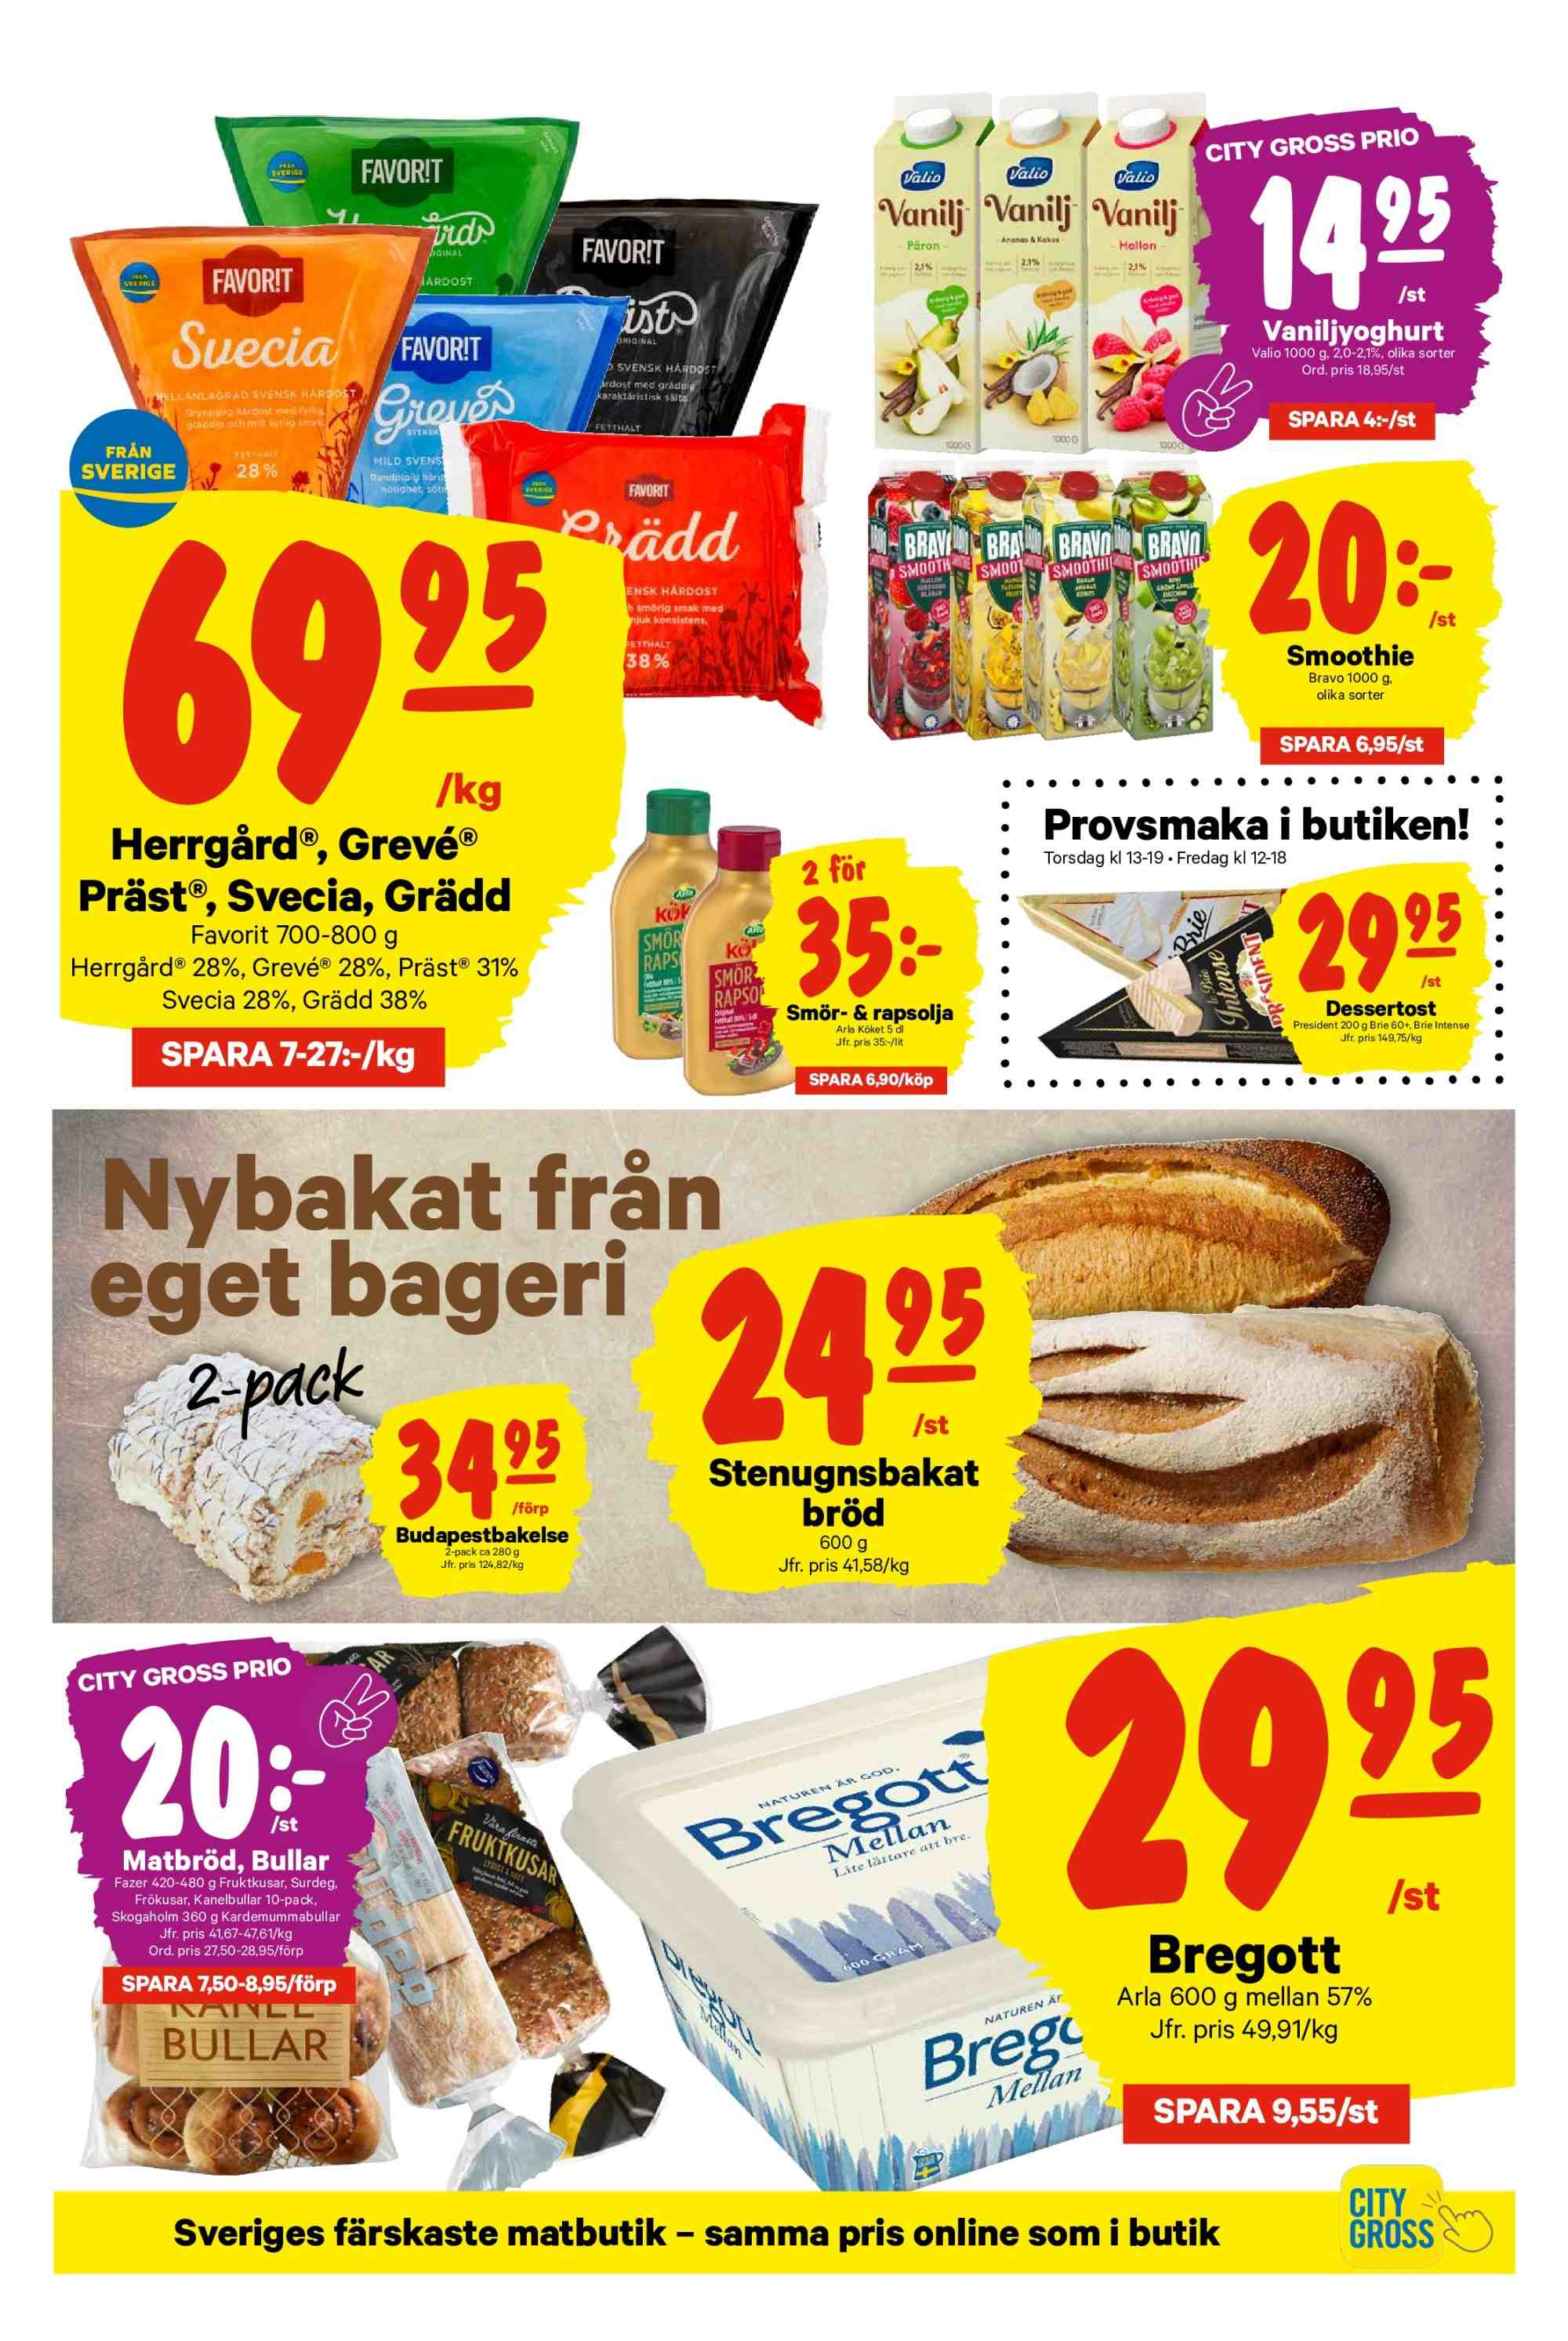 City Gross reklamblad - 28/1 2019 - 3/2 2019. Sida 5.